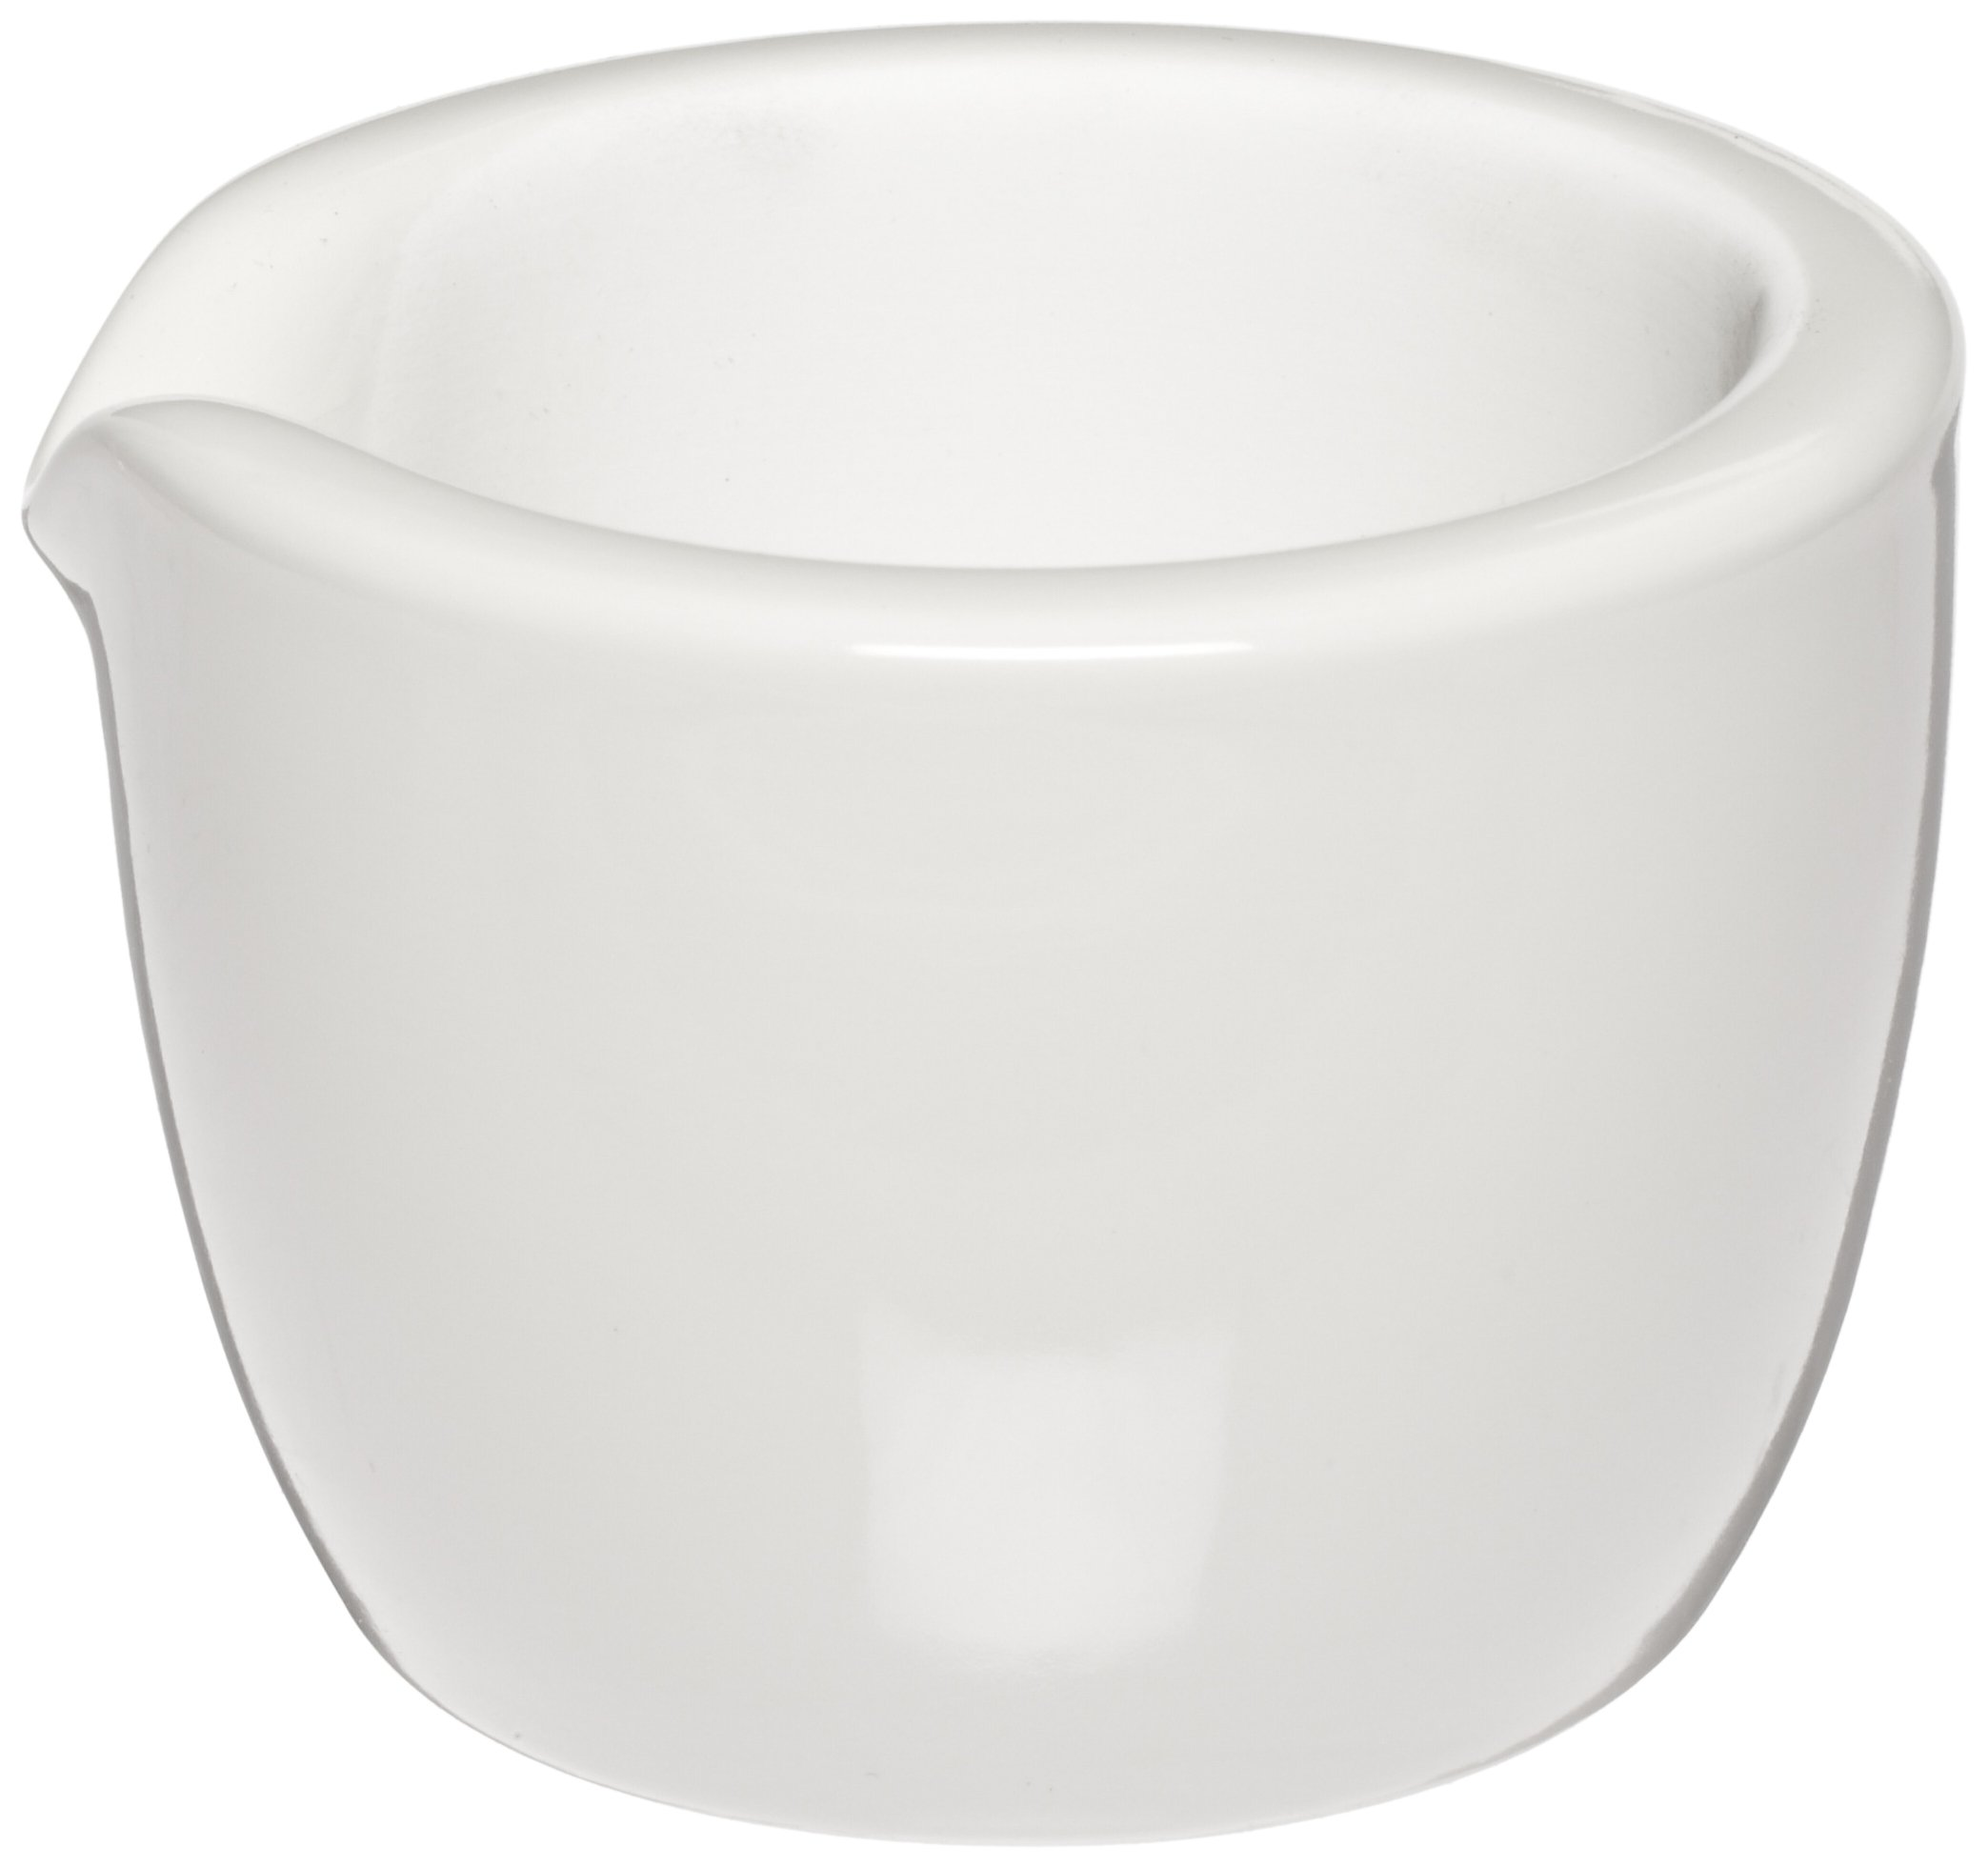 CoorsTek 60319 Porcelain Ceramic Mortar with Pouring Lip, 275mL Capacity, 115mm OD, 70mm Height (Case of 8)